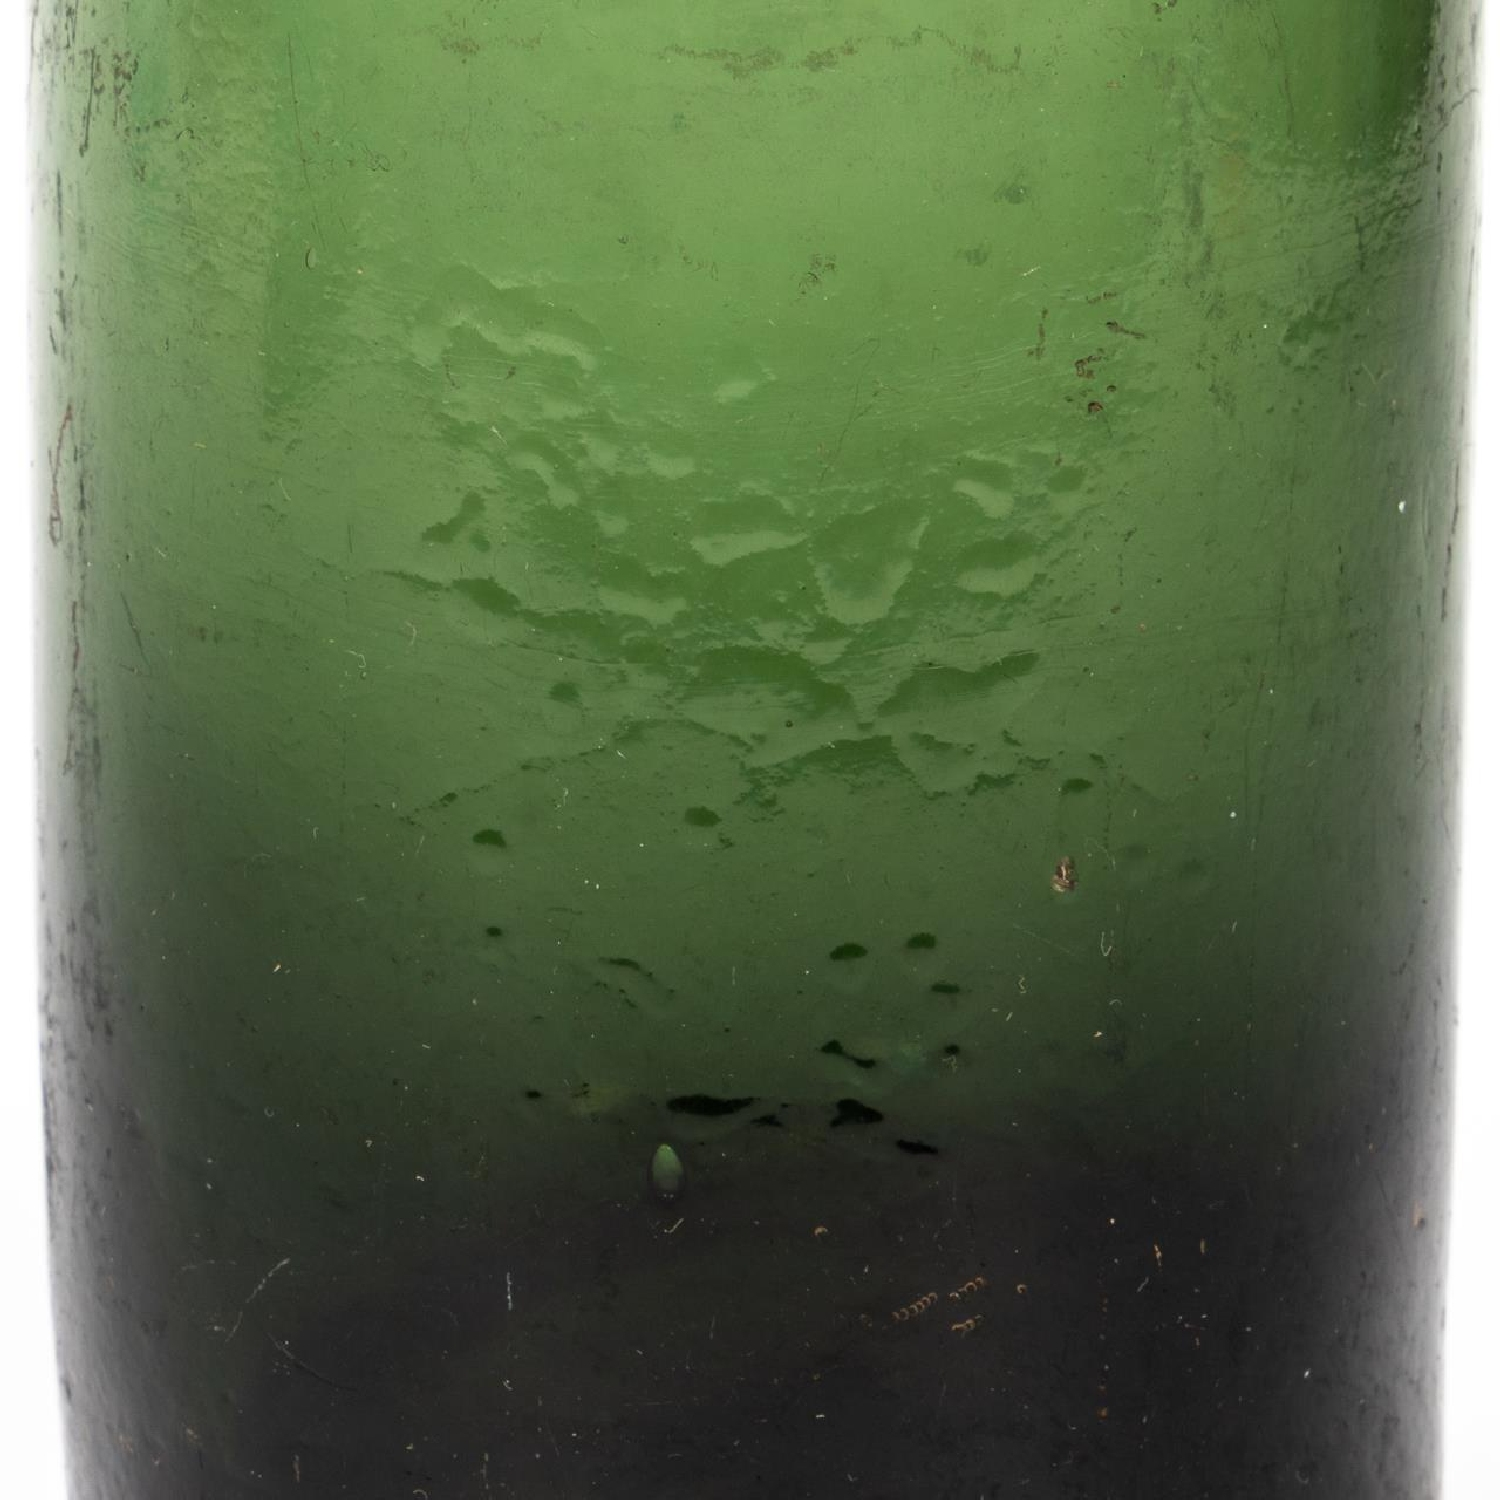 RMS CARPATHIA, SALVAGED GREEN GLASS BEER BOTTLE - Image 5 of 5